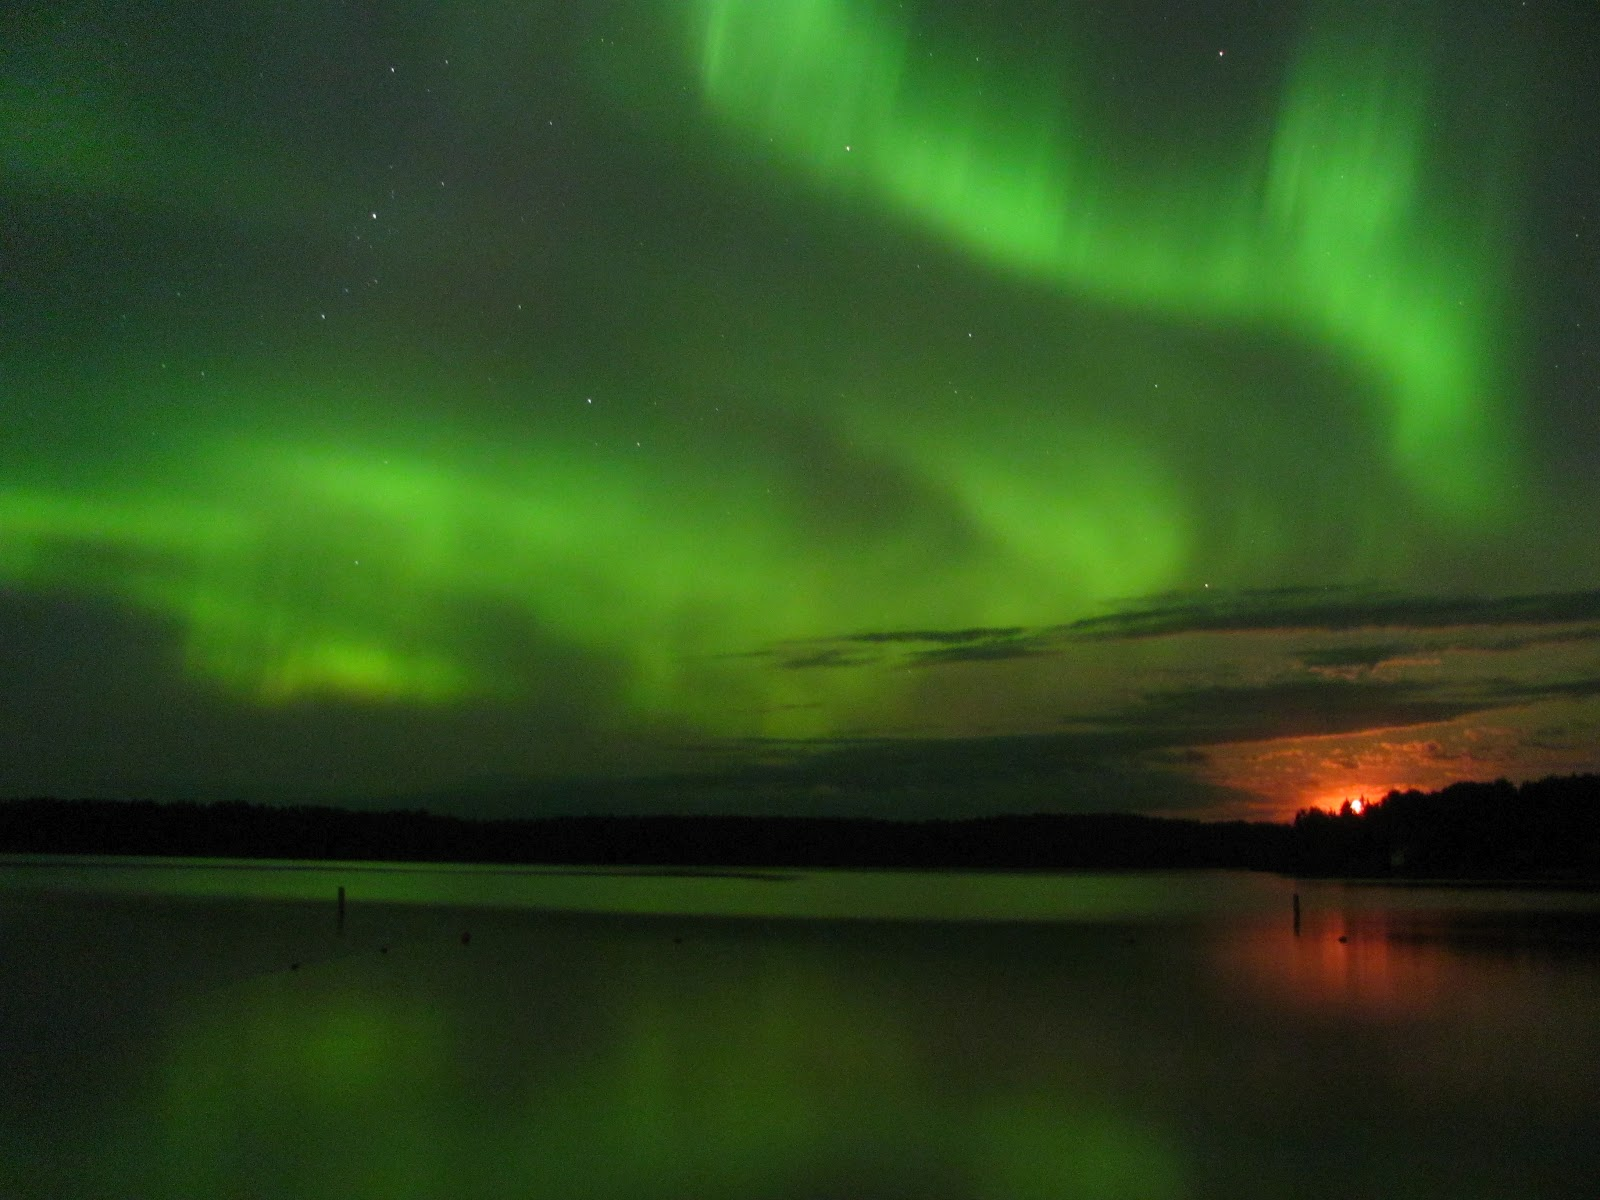 The northern lights are a common cause of electromagnetic interference